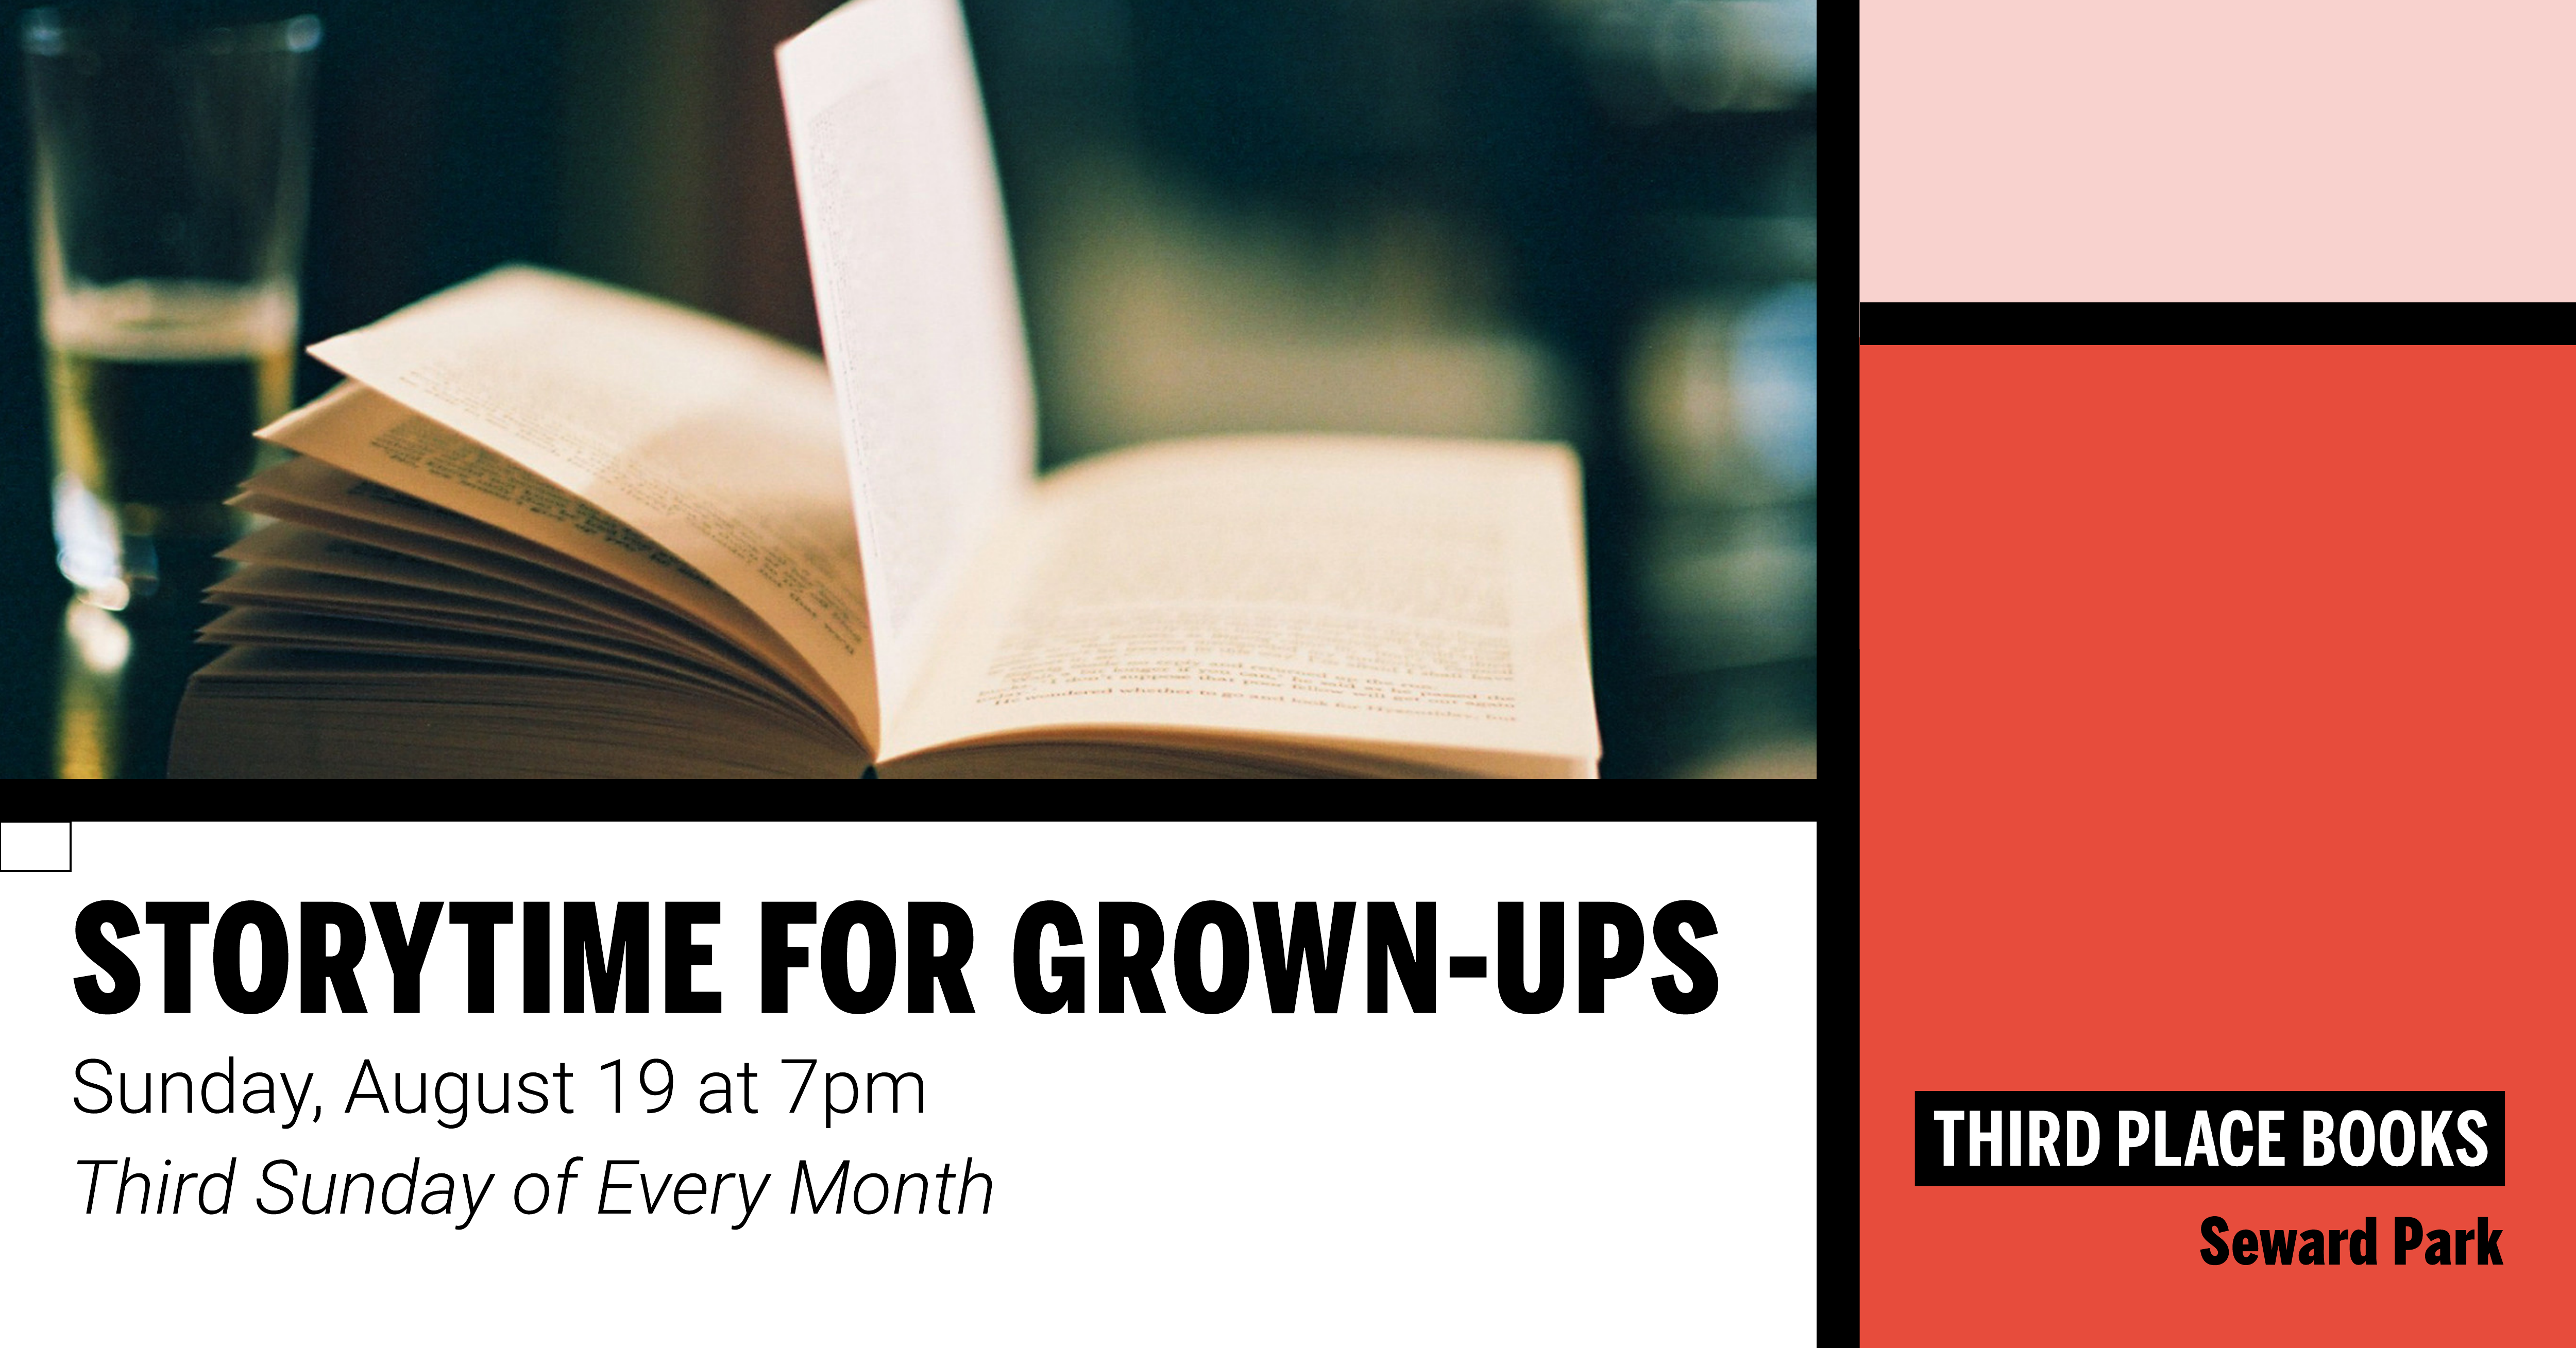 Story Time for Grown Ups! on Sunday, August 19 at 7pm